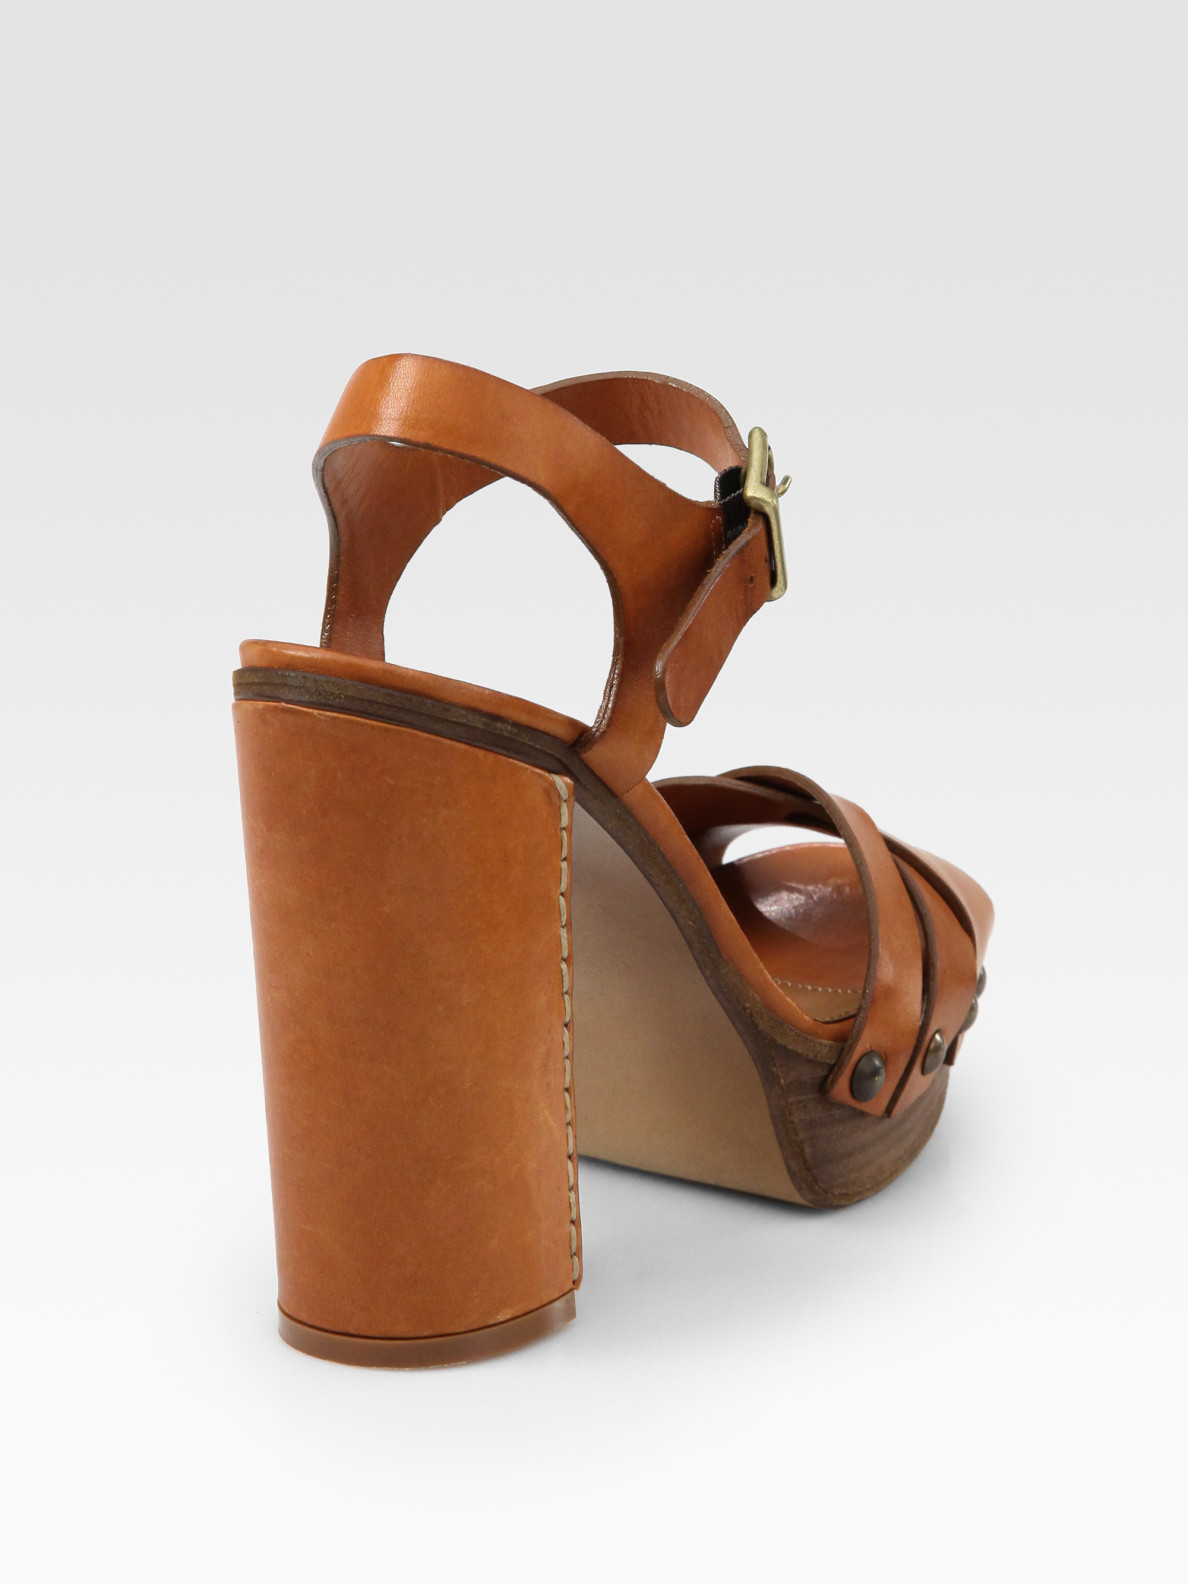 495656fcc1497e Lyst - Chloé Leather Wooden-sole Platform Sandals in Brown